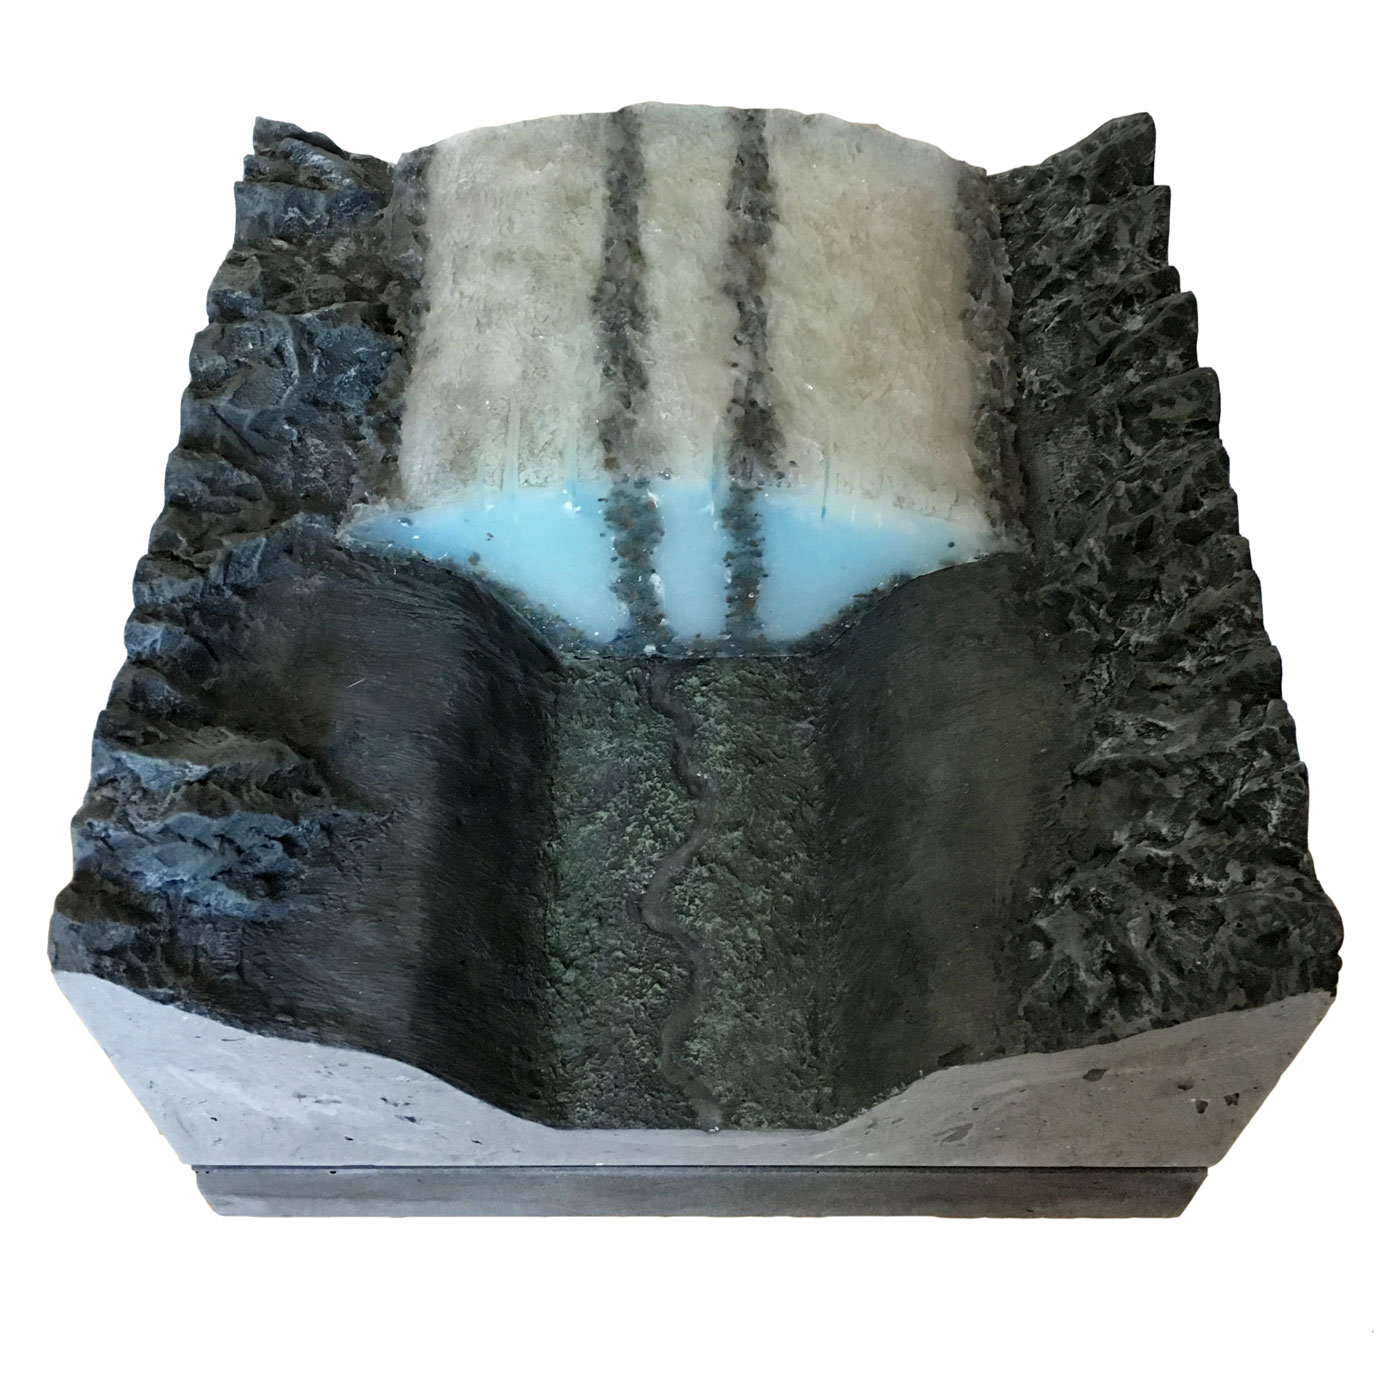 ALETSCH GLACIER U-SHAPED VALLEY, © 2016, acrylic and epoxy resin cast, acrylic paint, acrylic paint, molded in wax, 40 x 40 x 20 cm